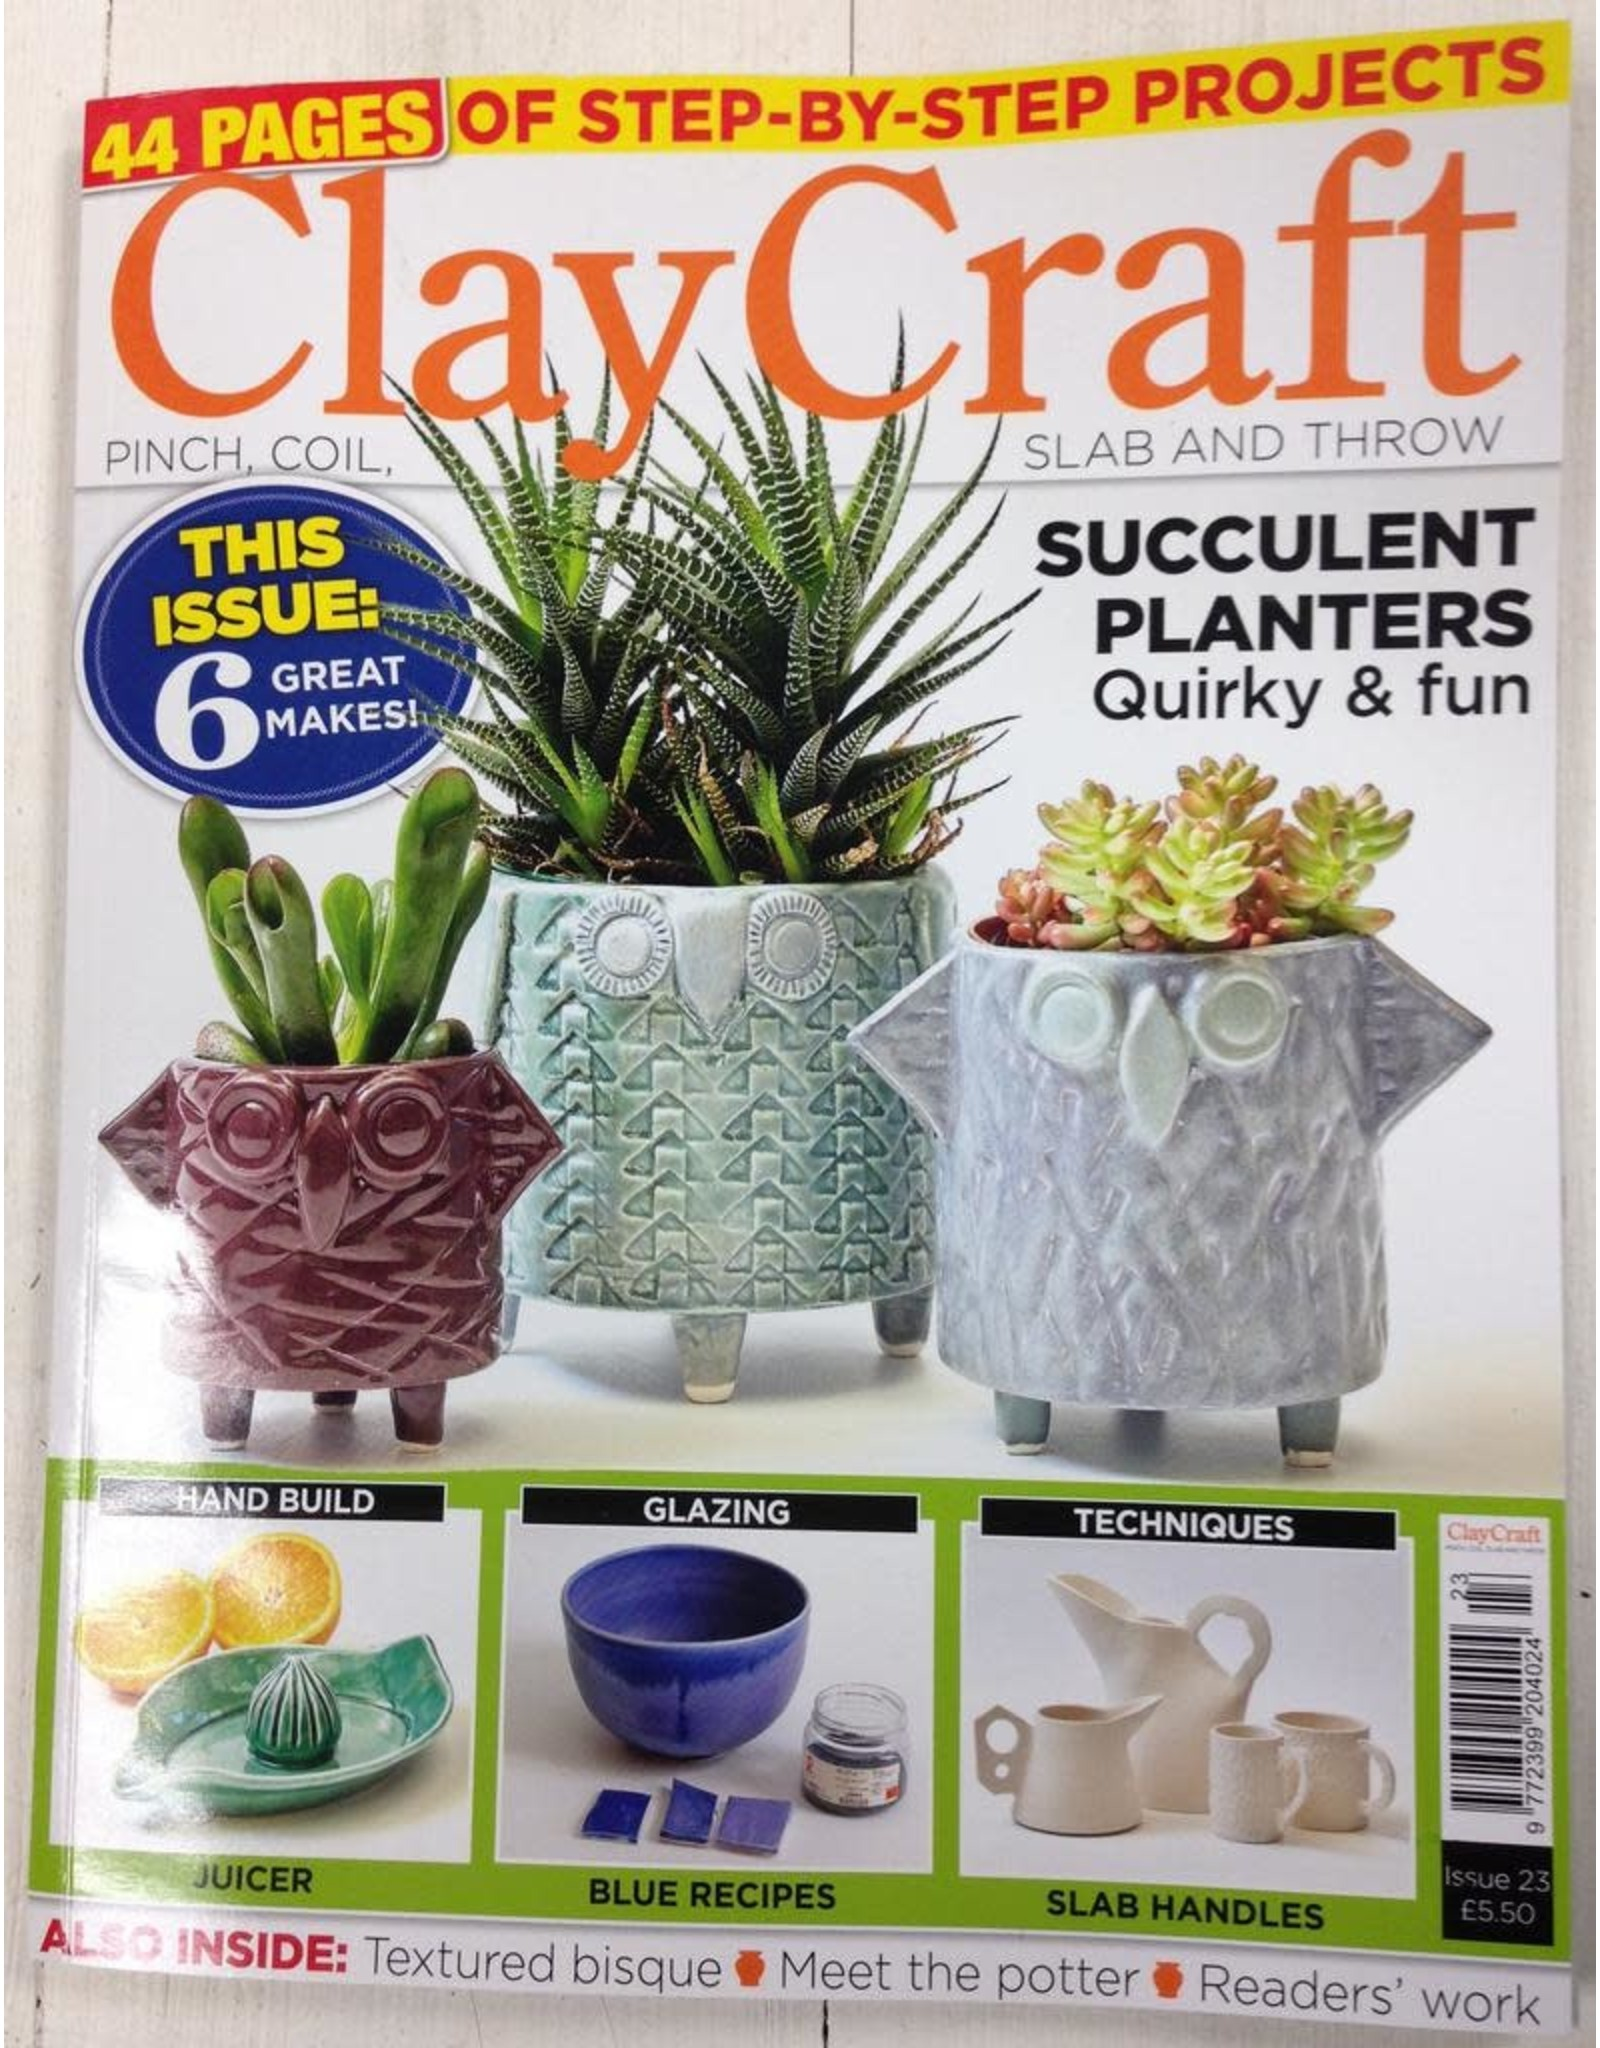 ClayCraft (up to issue 35)